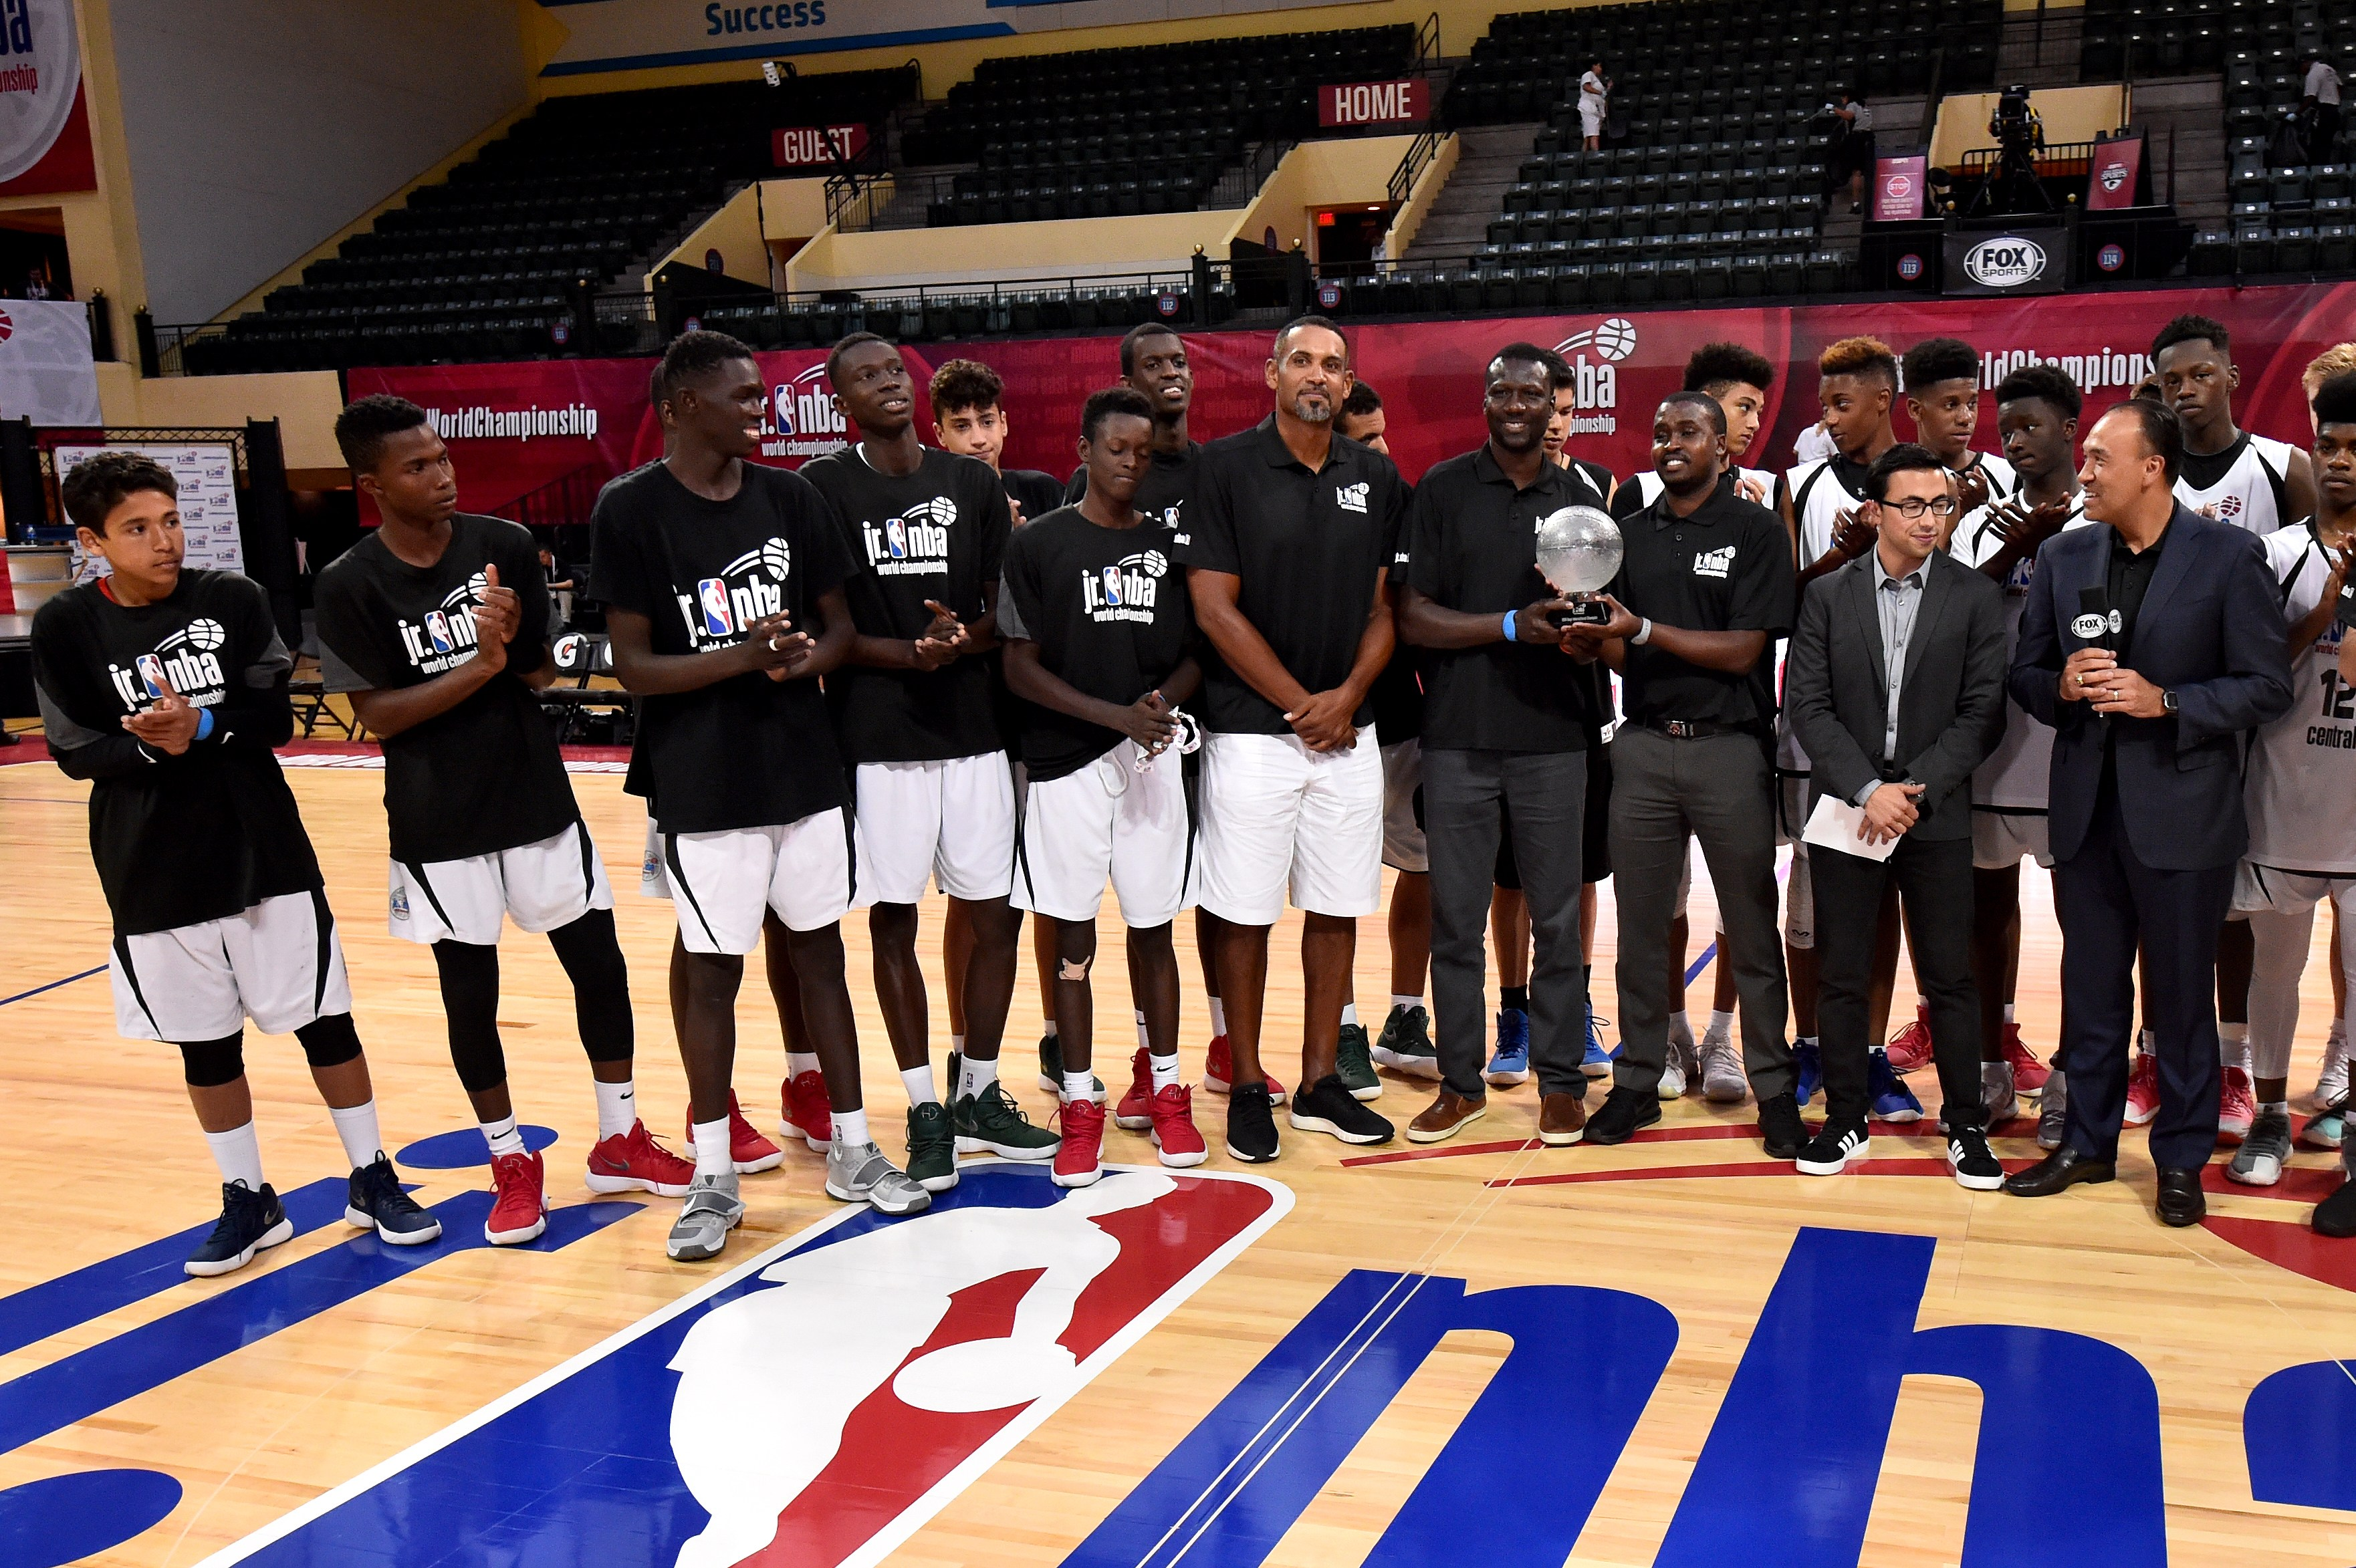 20 Players Make List as NBA Announces Roster for Global Championship